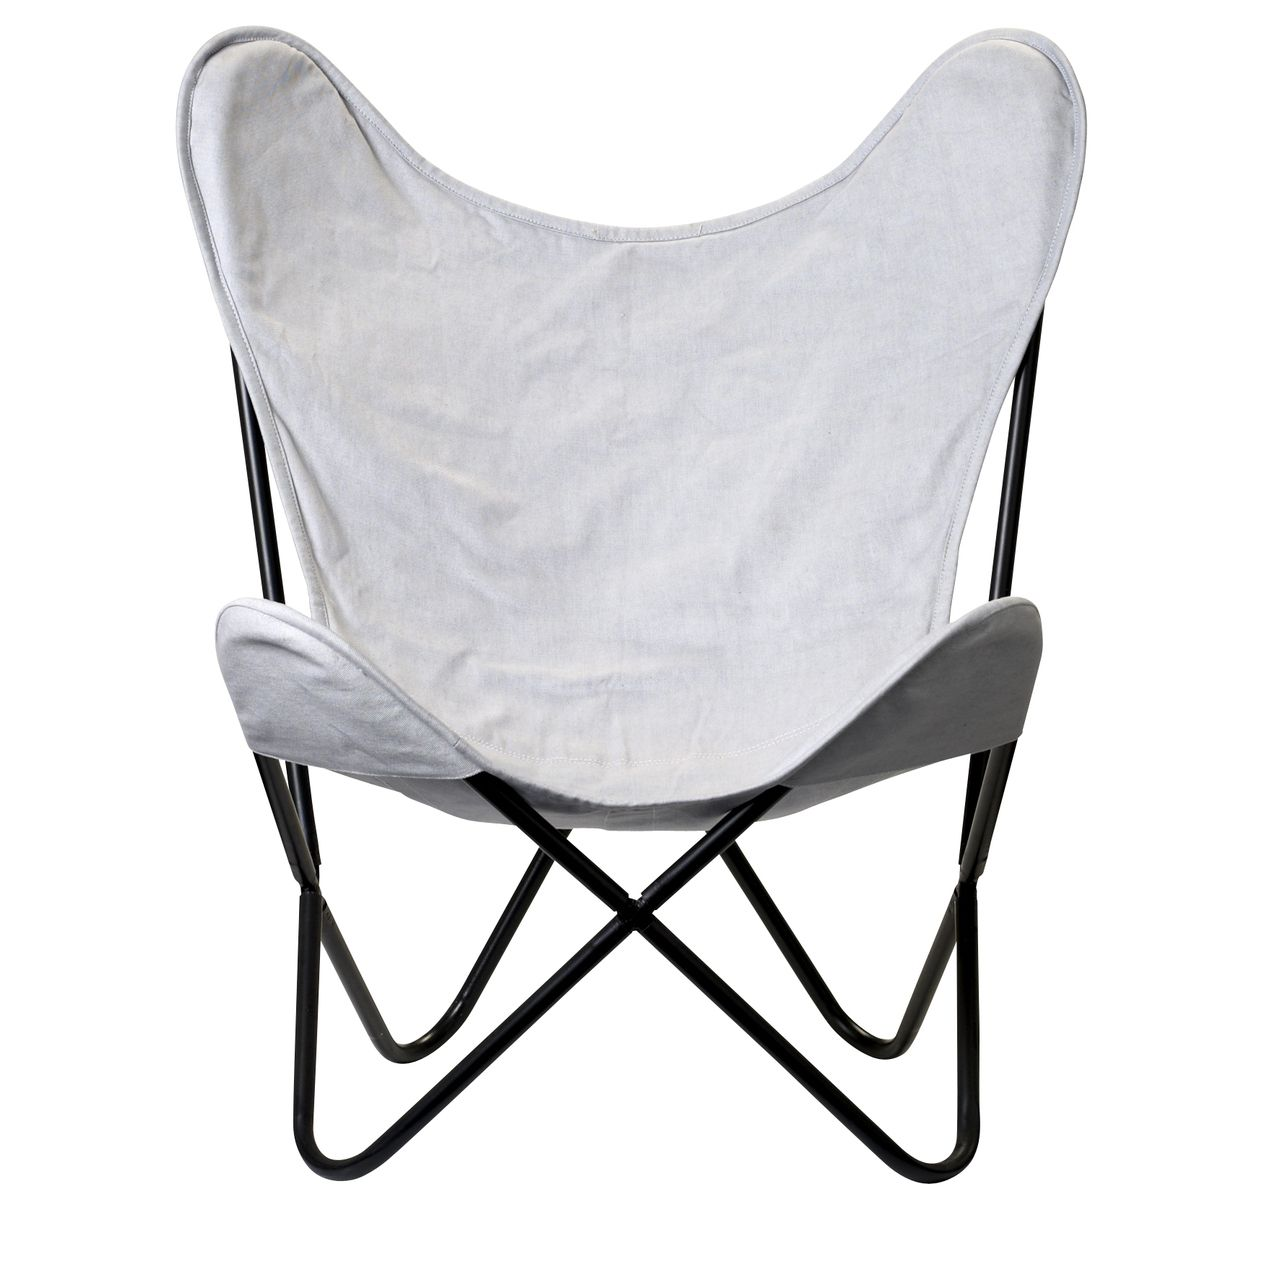 Bloomingville Butterfly Chair Grey Butterfly Chair Stylish Chairs Grey Chair